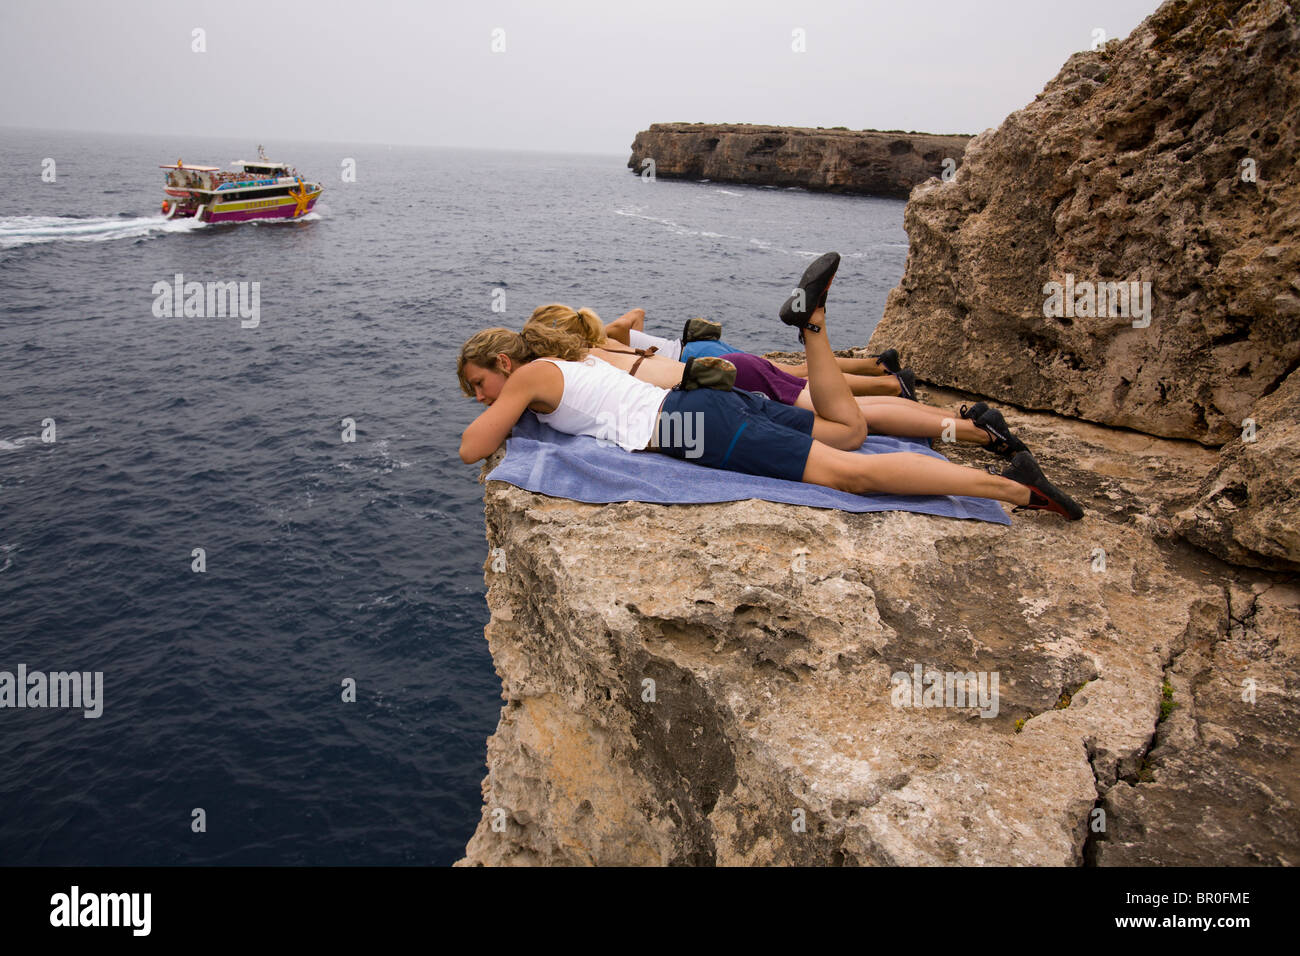 Three women hang out and sunbathe on a cliff above a rock climbing area while waiting for their turns to climb. - Stock Image